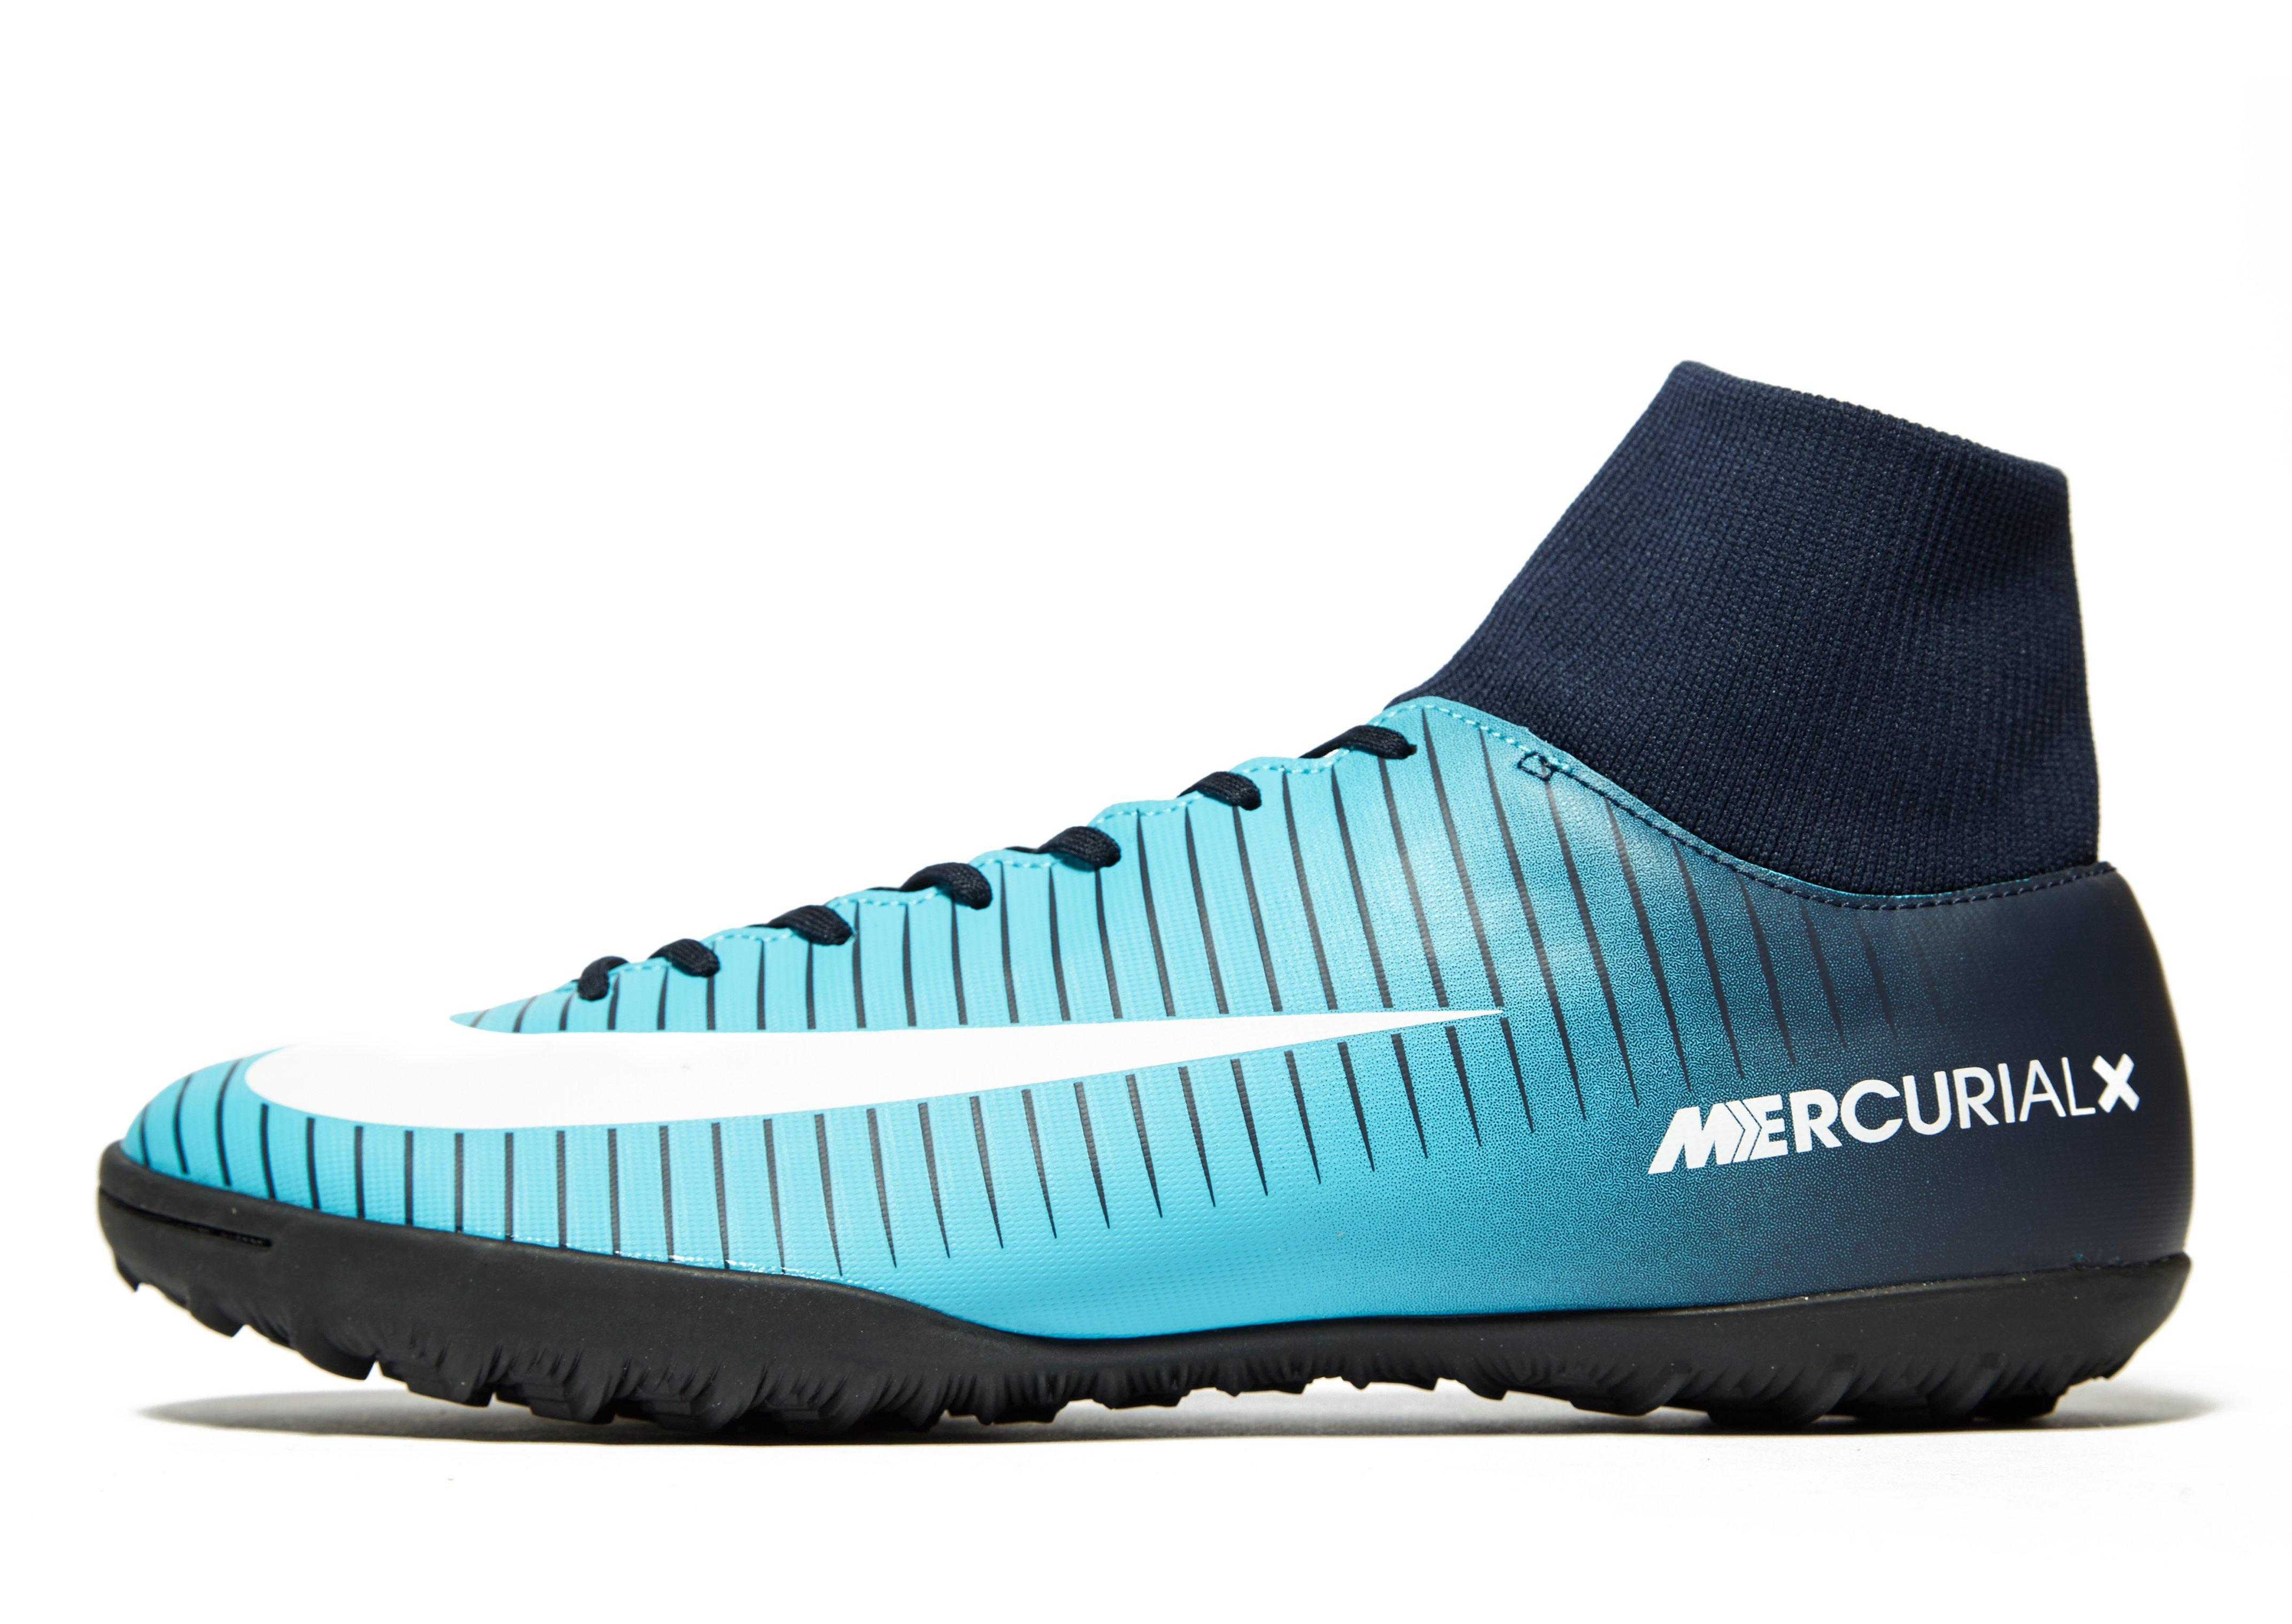 promo code a242c 2202f Nike Fire And Ice Mercurial Veloce Dynamic Fit Tf in Blue for Men - Lyst